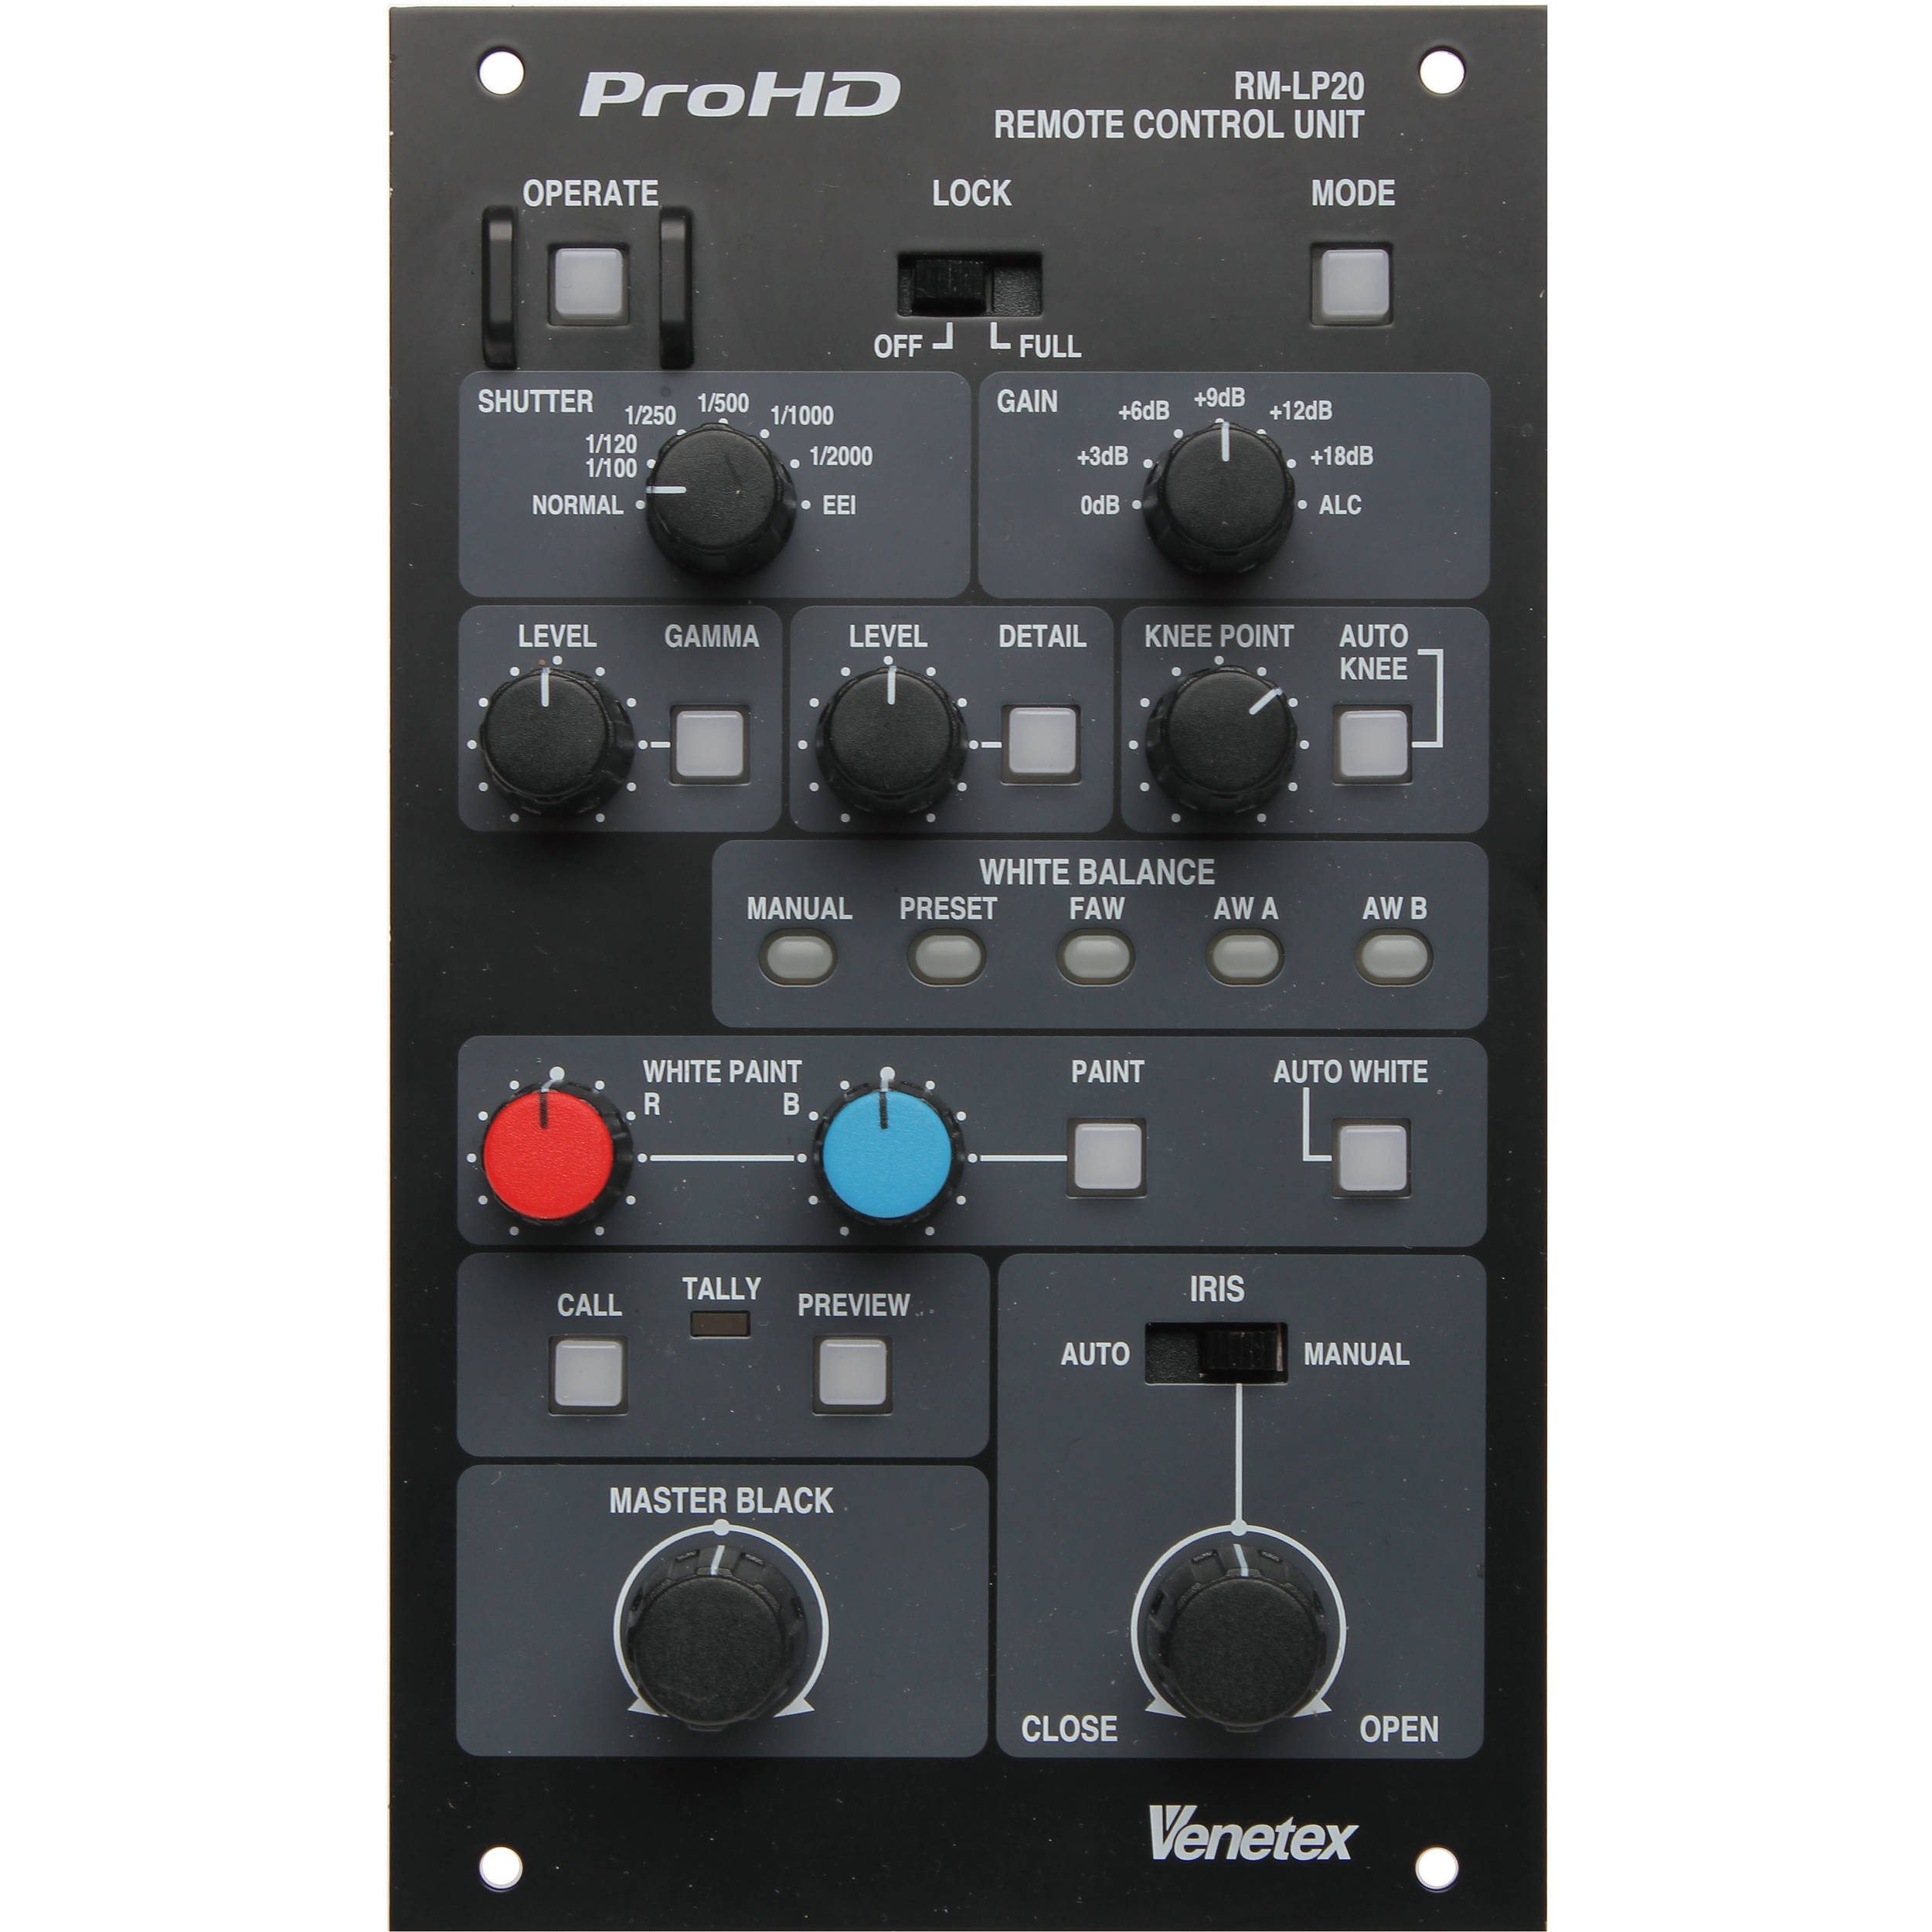 ProHD REMOTE CONTROL UNIT